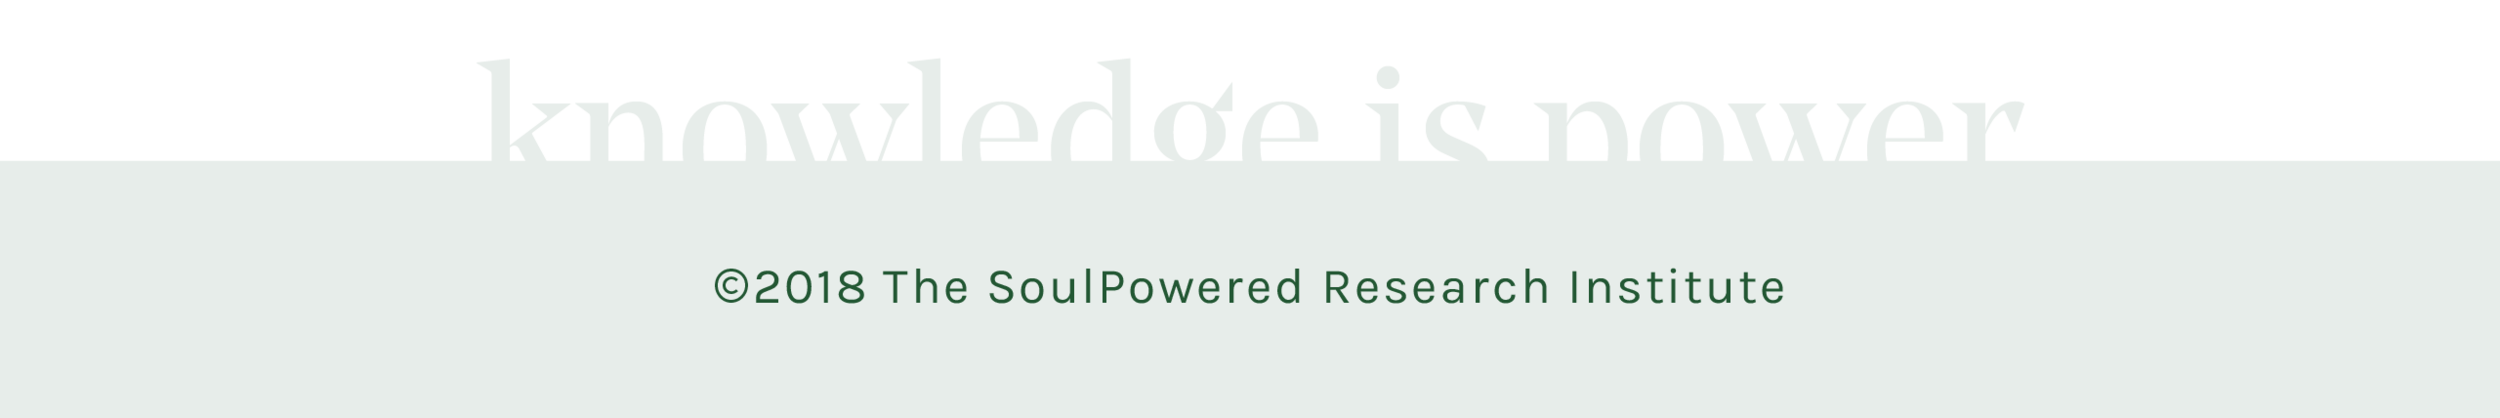 SPResearchInstitute-Newsletter-FooterText2018-2560x427.png